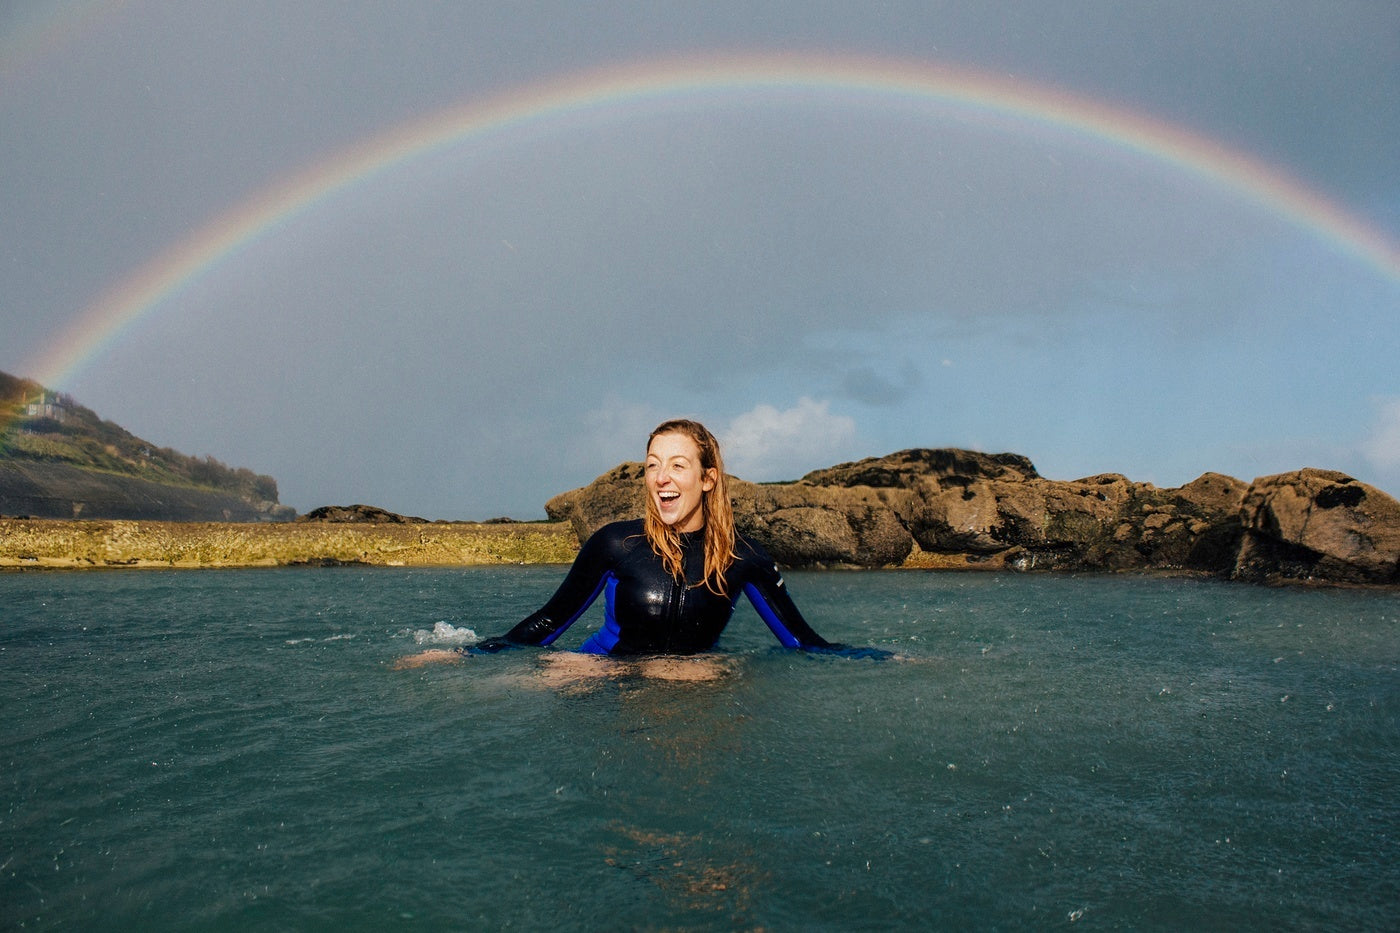 Our Wetsuit tester poppy sits under a rainbow in the local tidal pool